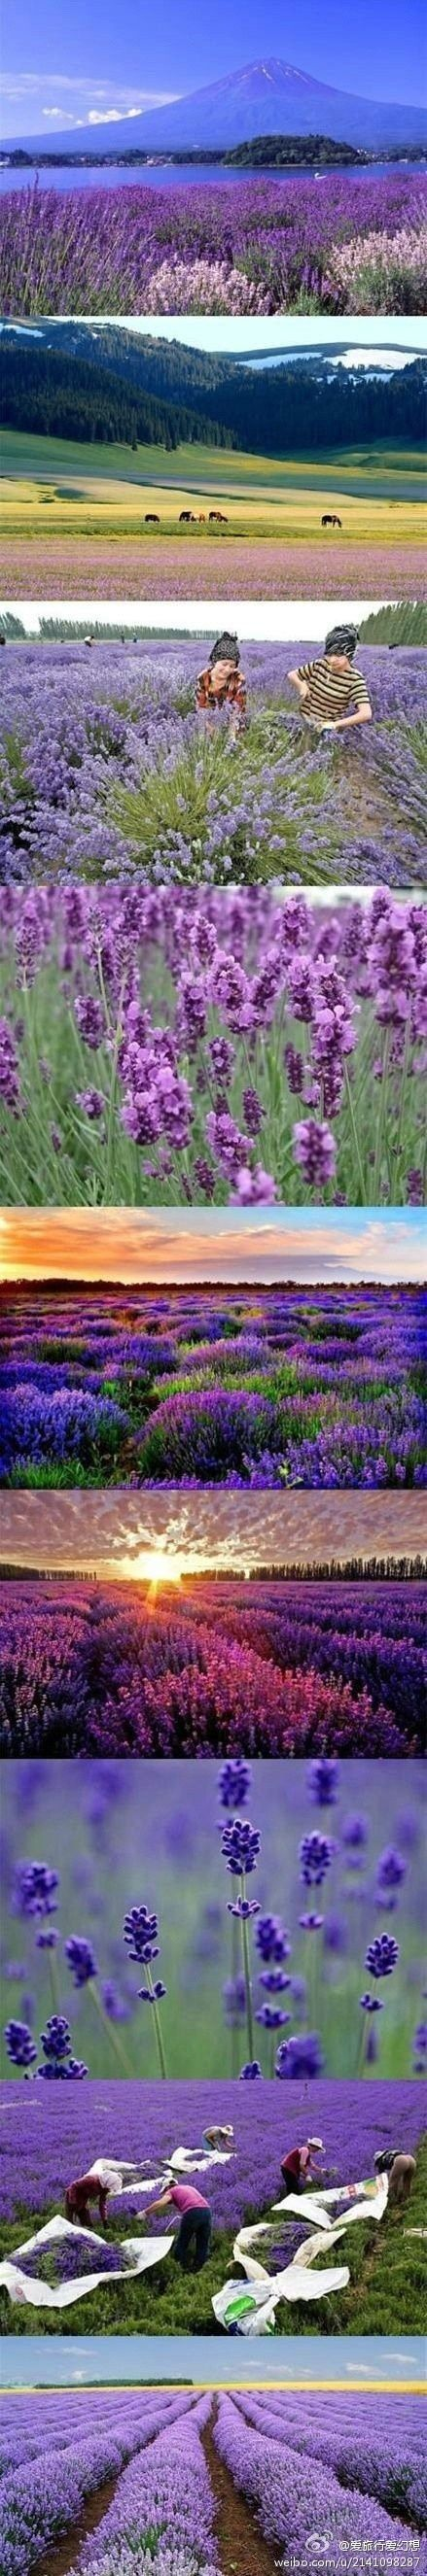 Lavendar Town China - Xinjiang Yili. I love lavendar and I love Asia, so I would probably love this place as well.